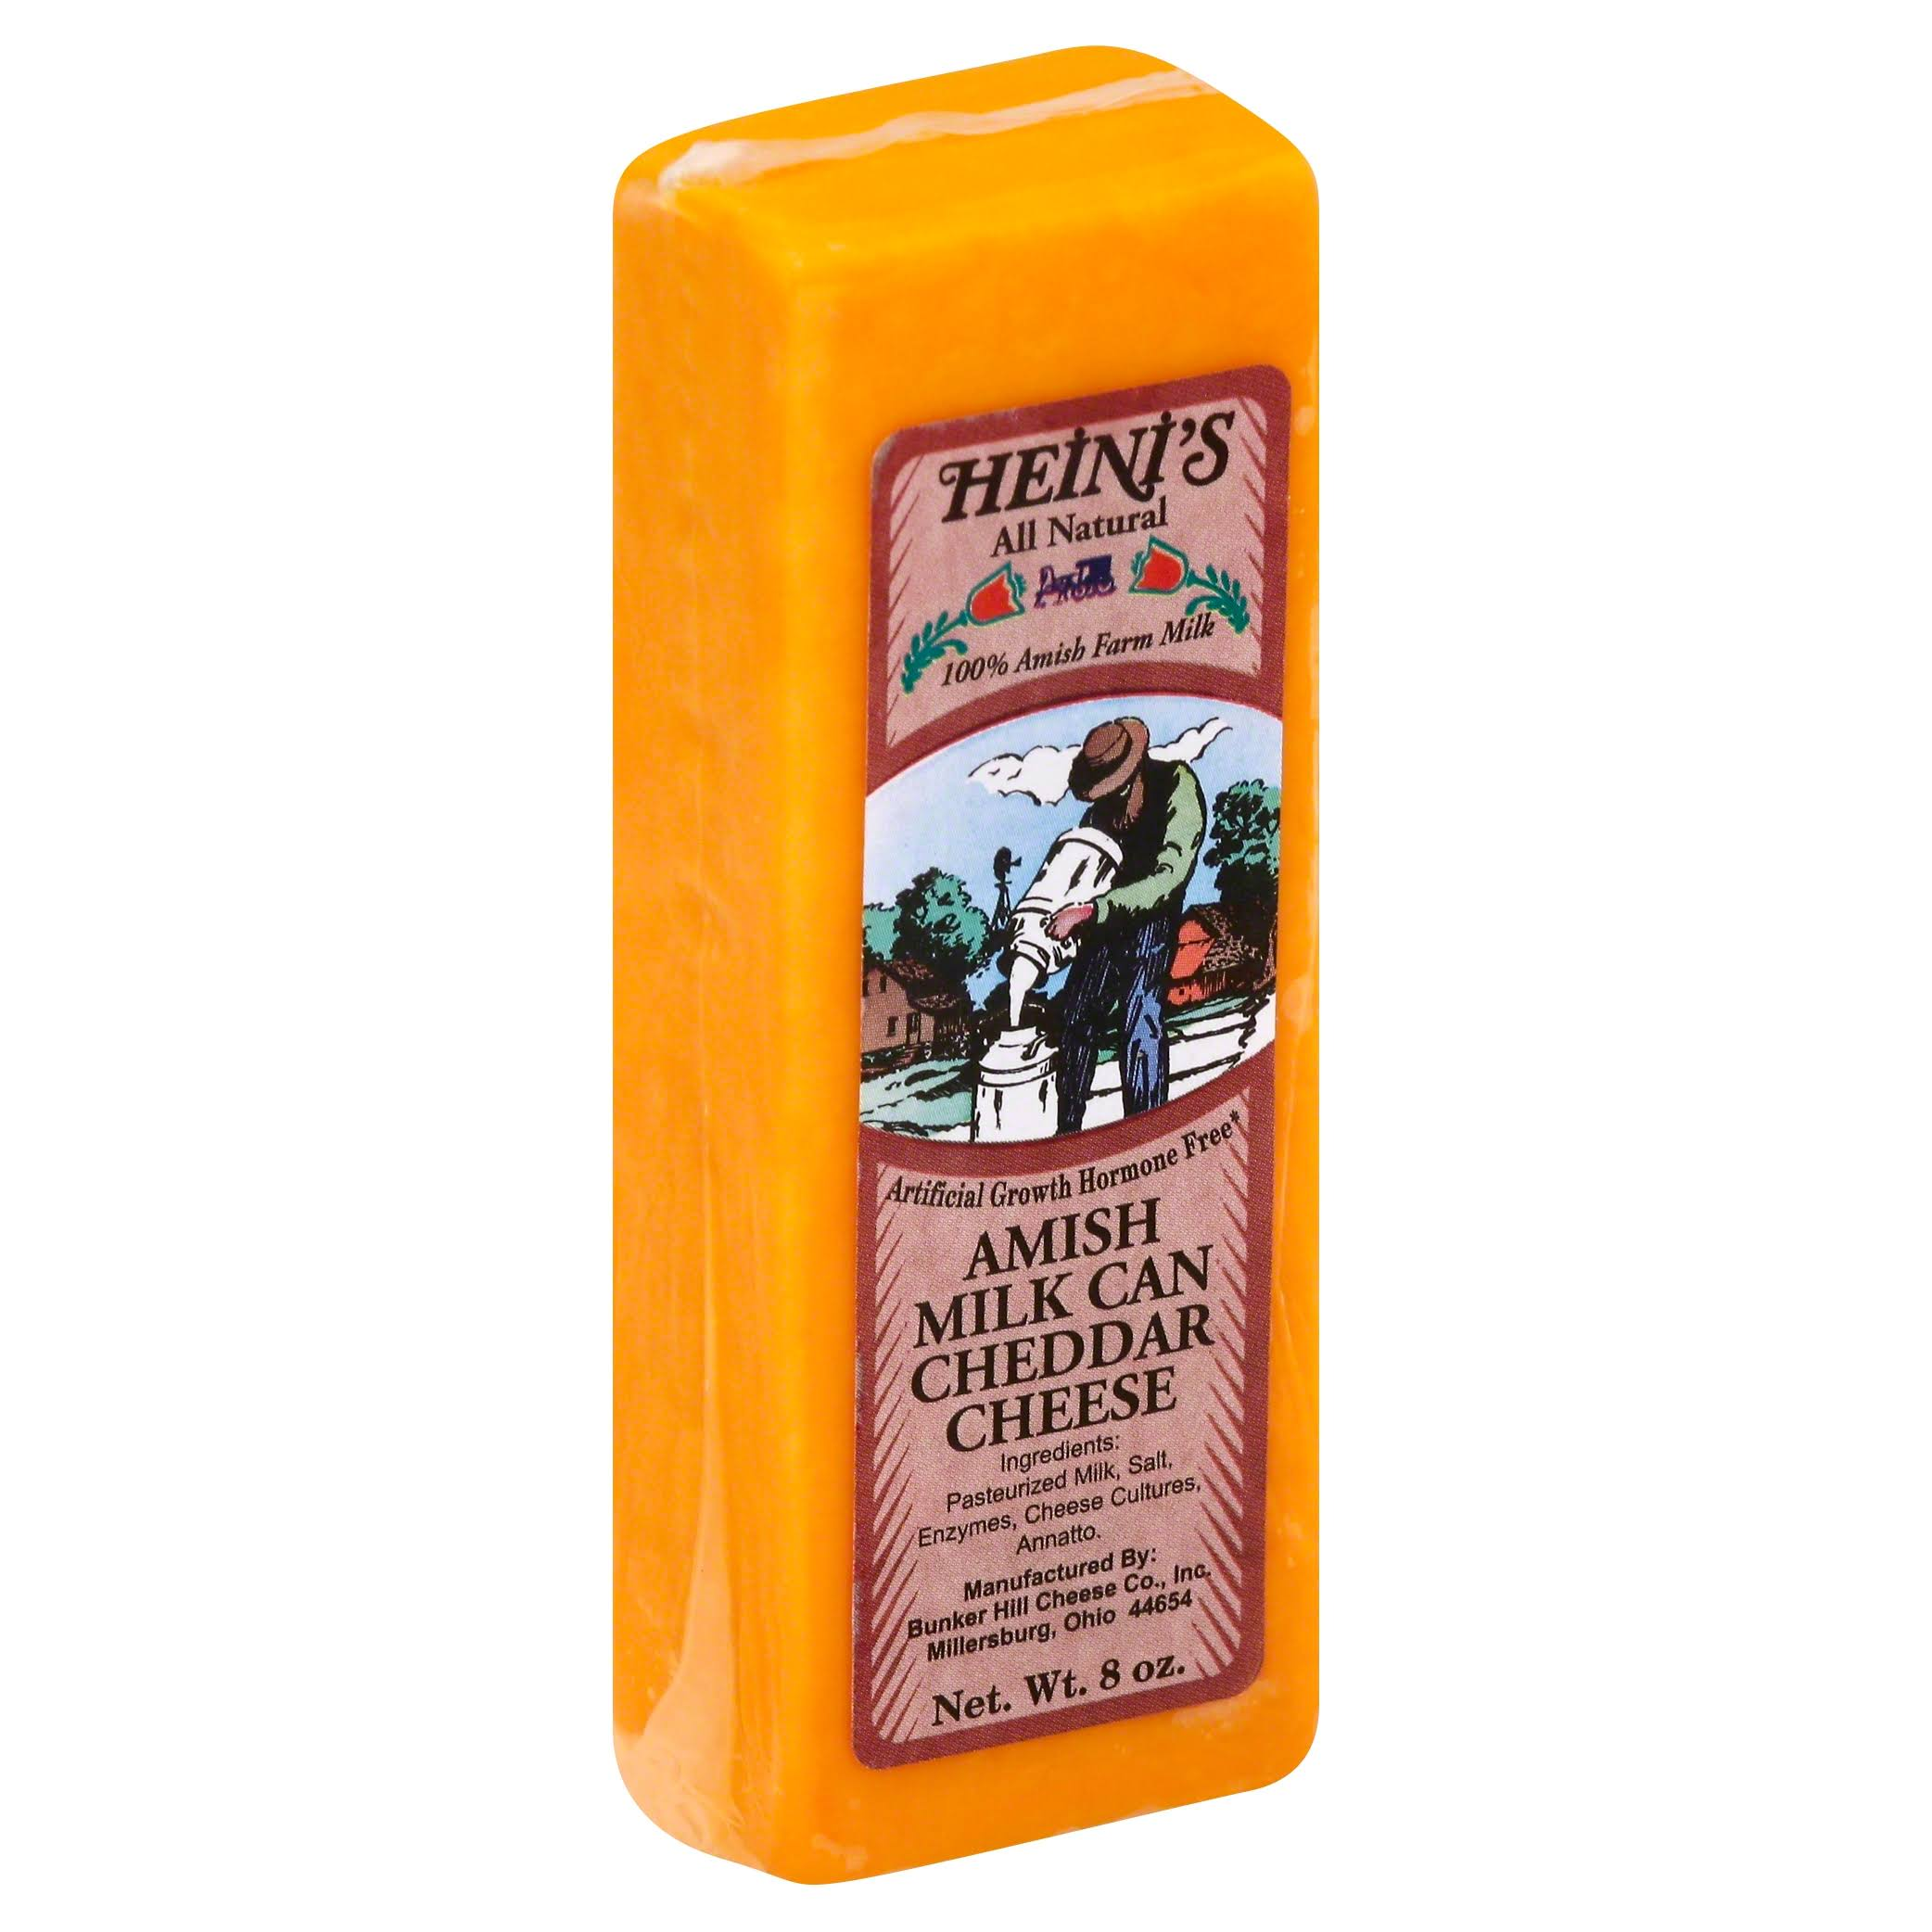 Heinis Cheese, Amish Milk Can Cheddar - 8 oz